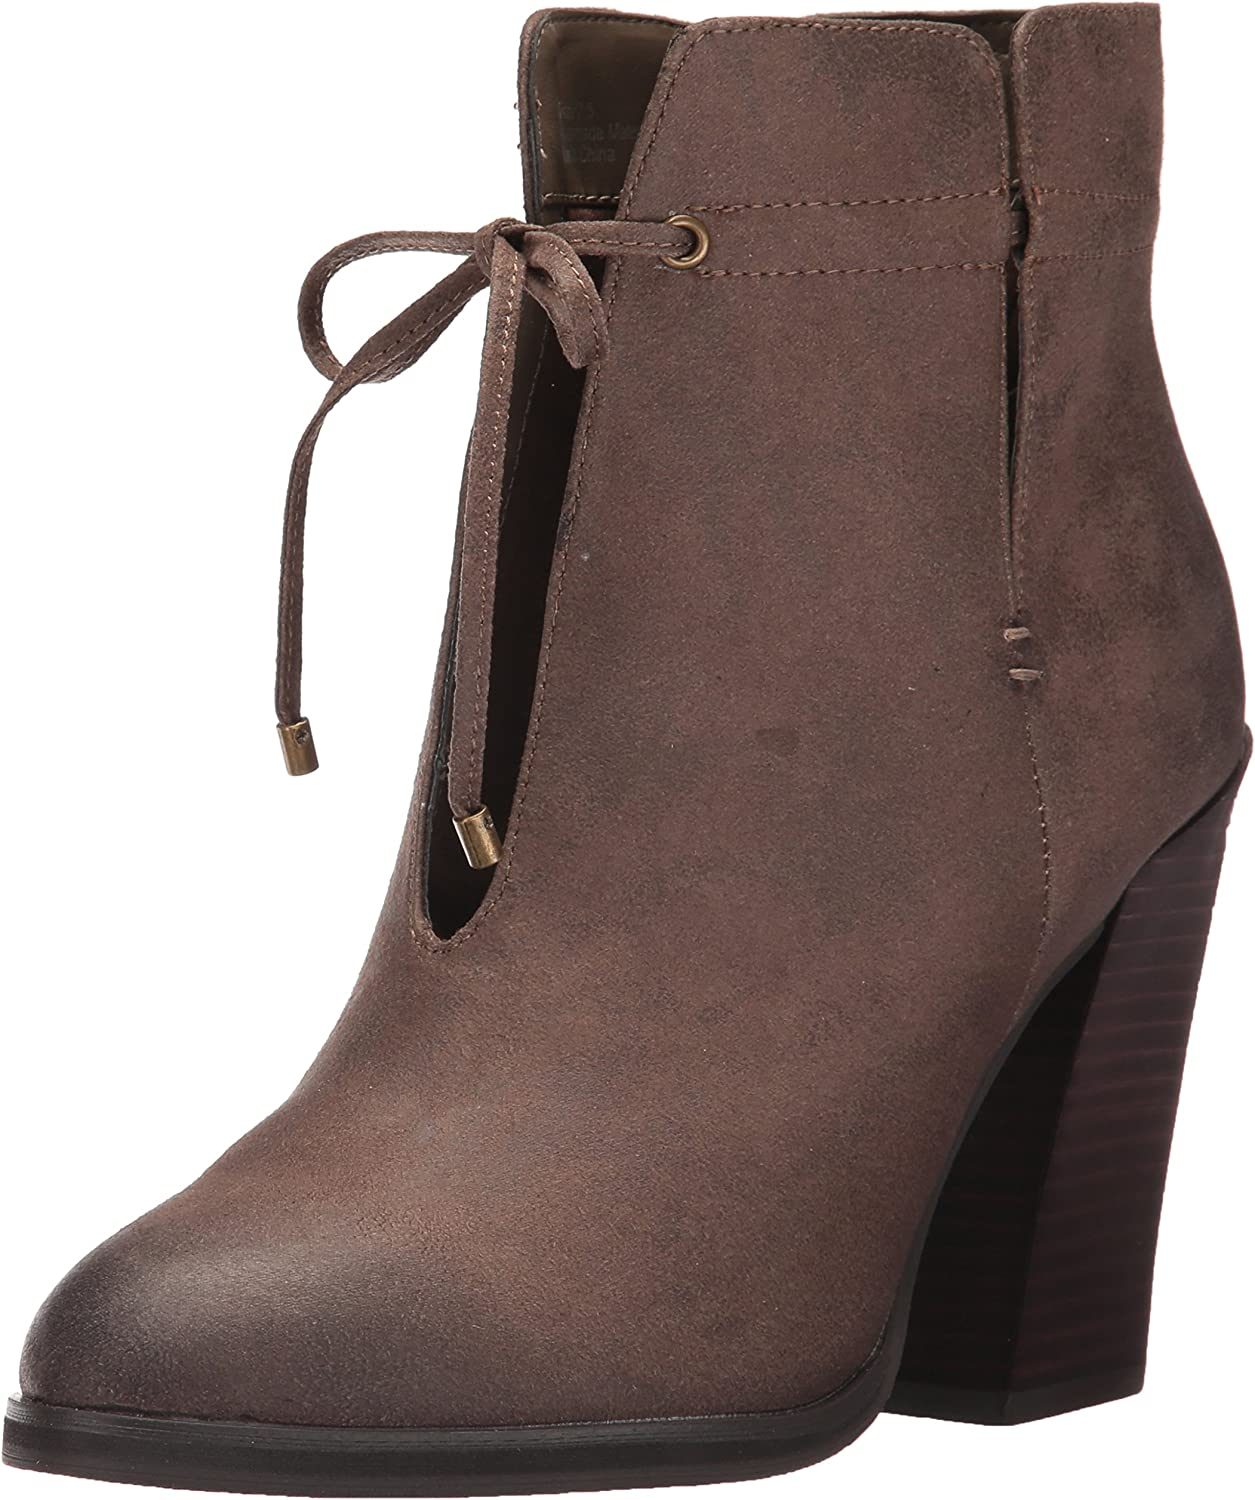 Sbicca Women's Chickflick Bootie Outlet Direct sale of manufacturer SALE Ankle